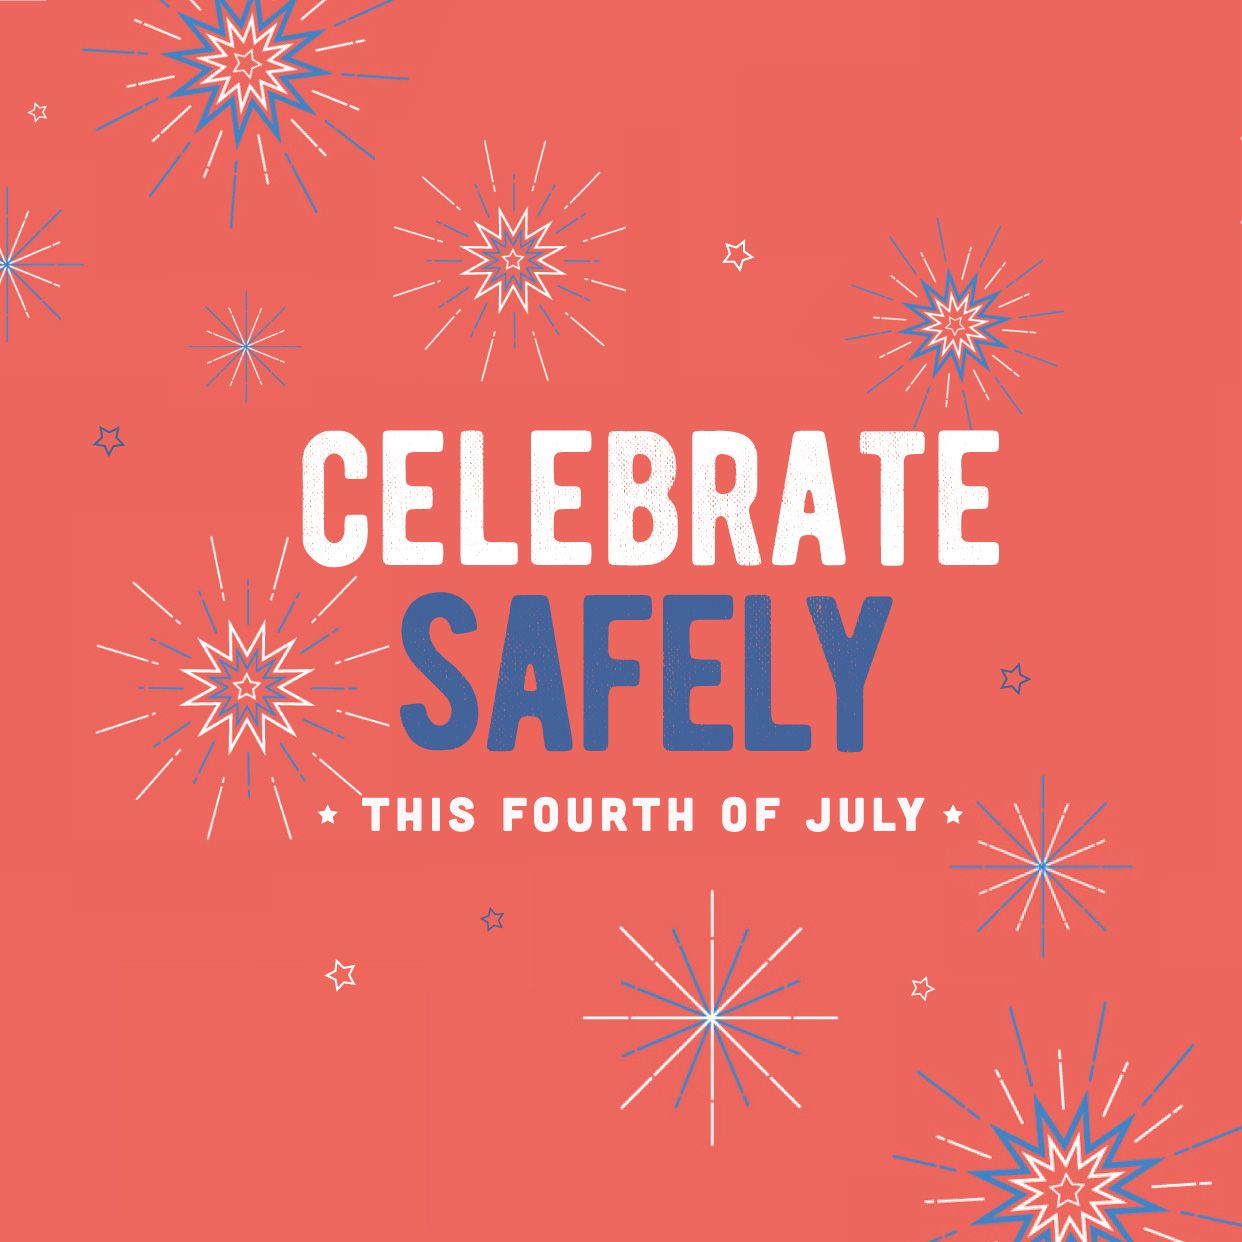 WE WISH ALL OUR PATIENTS a safe and fun Independence Day